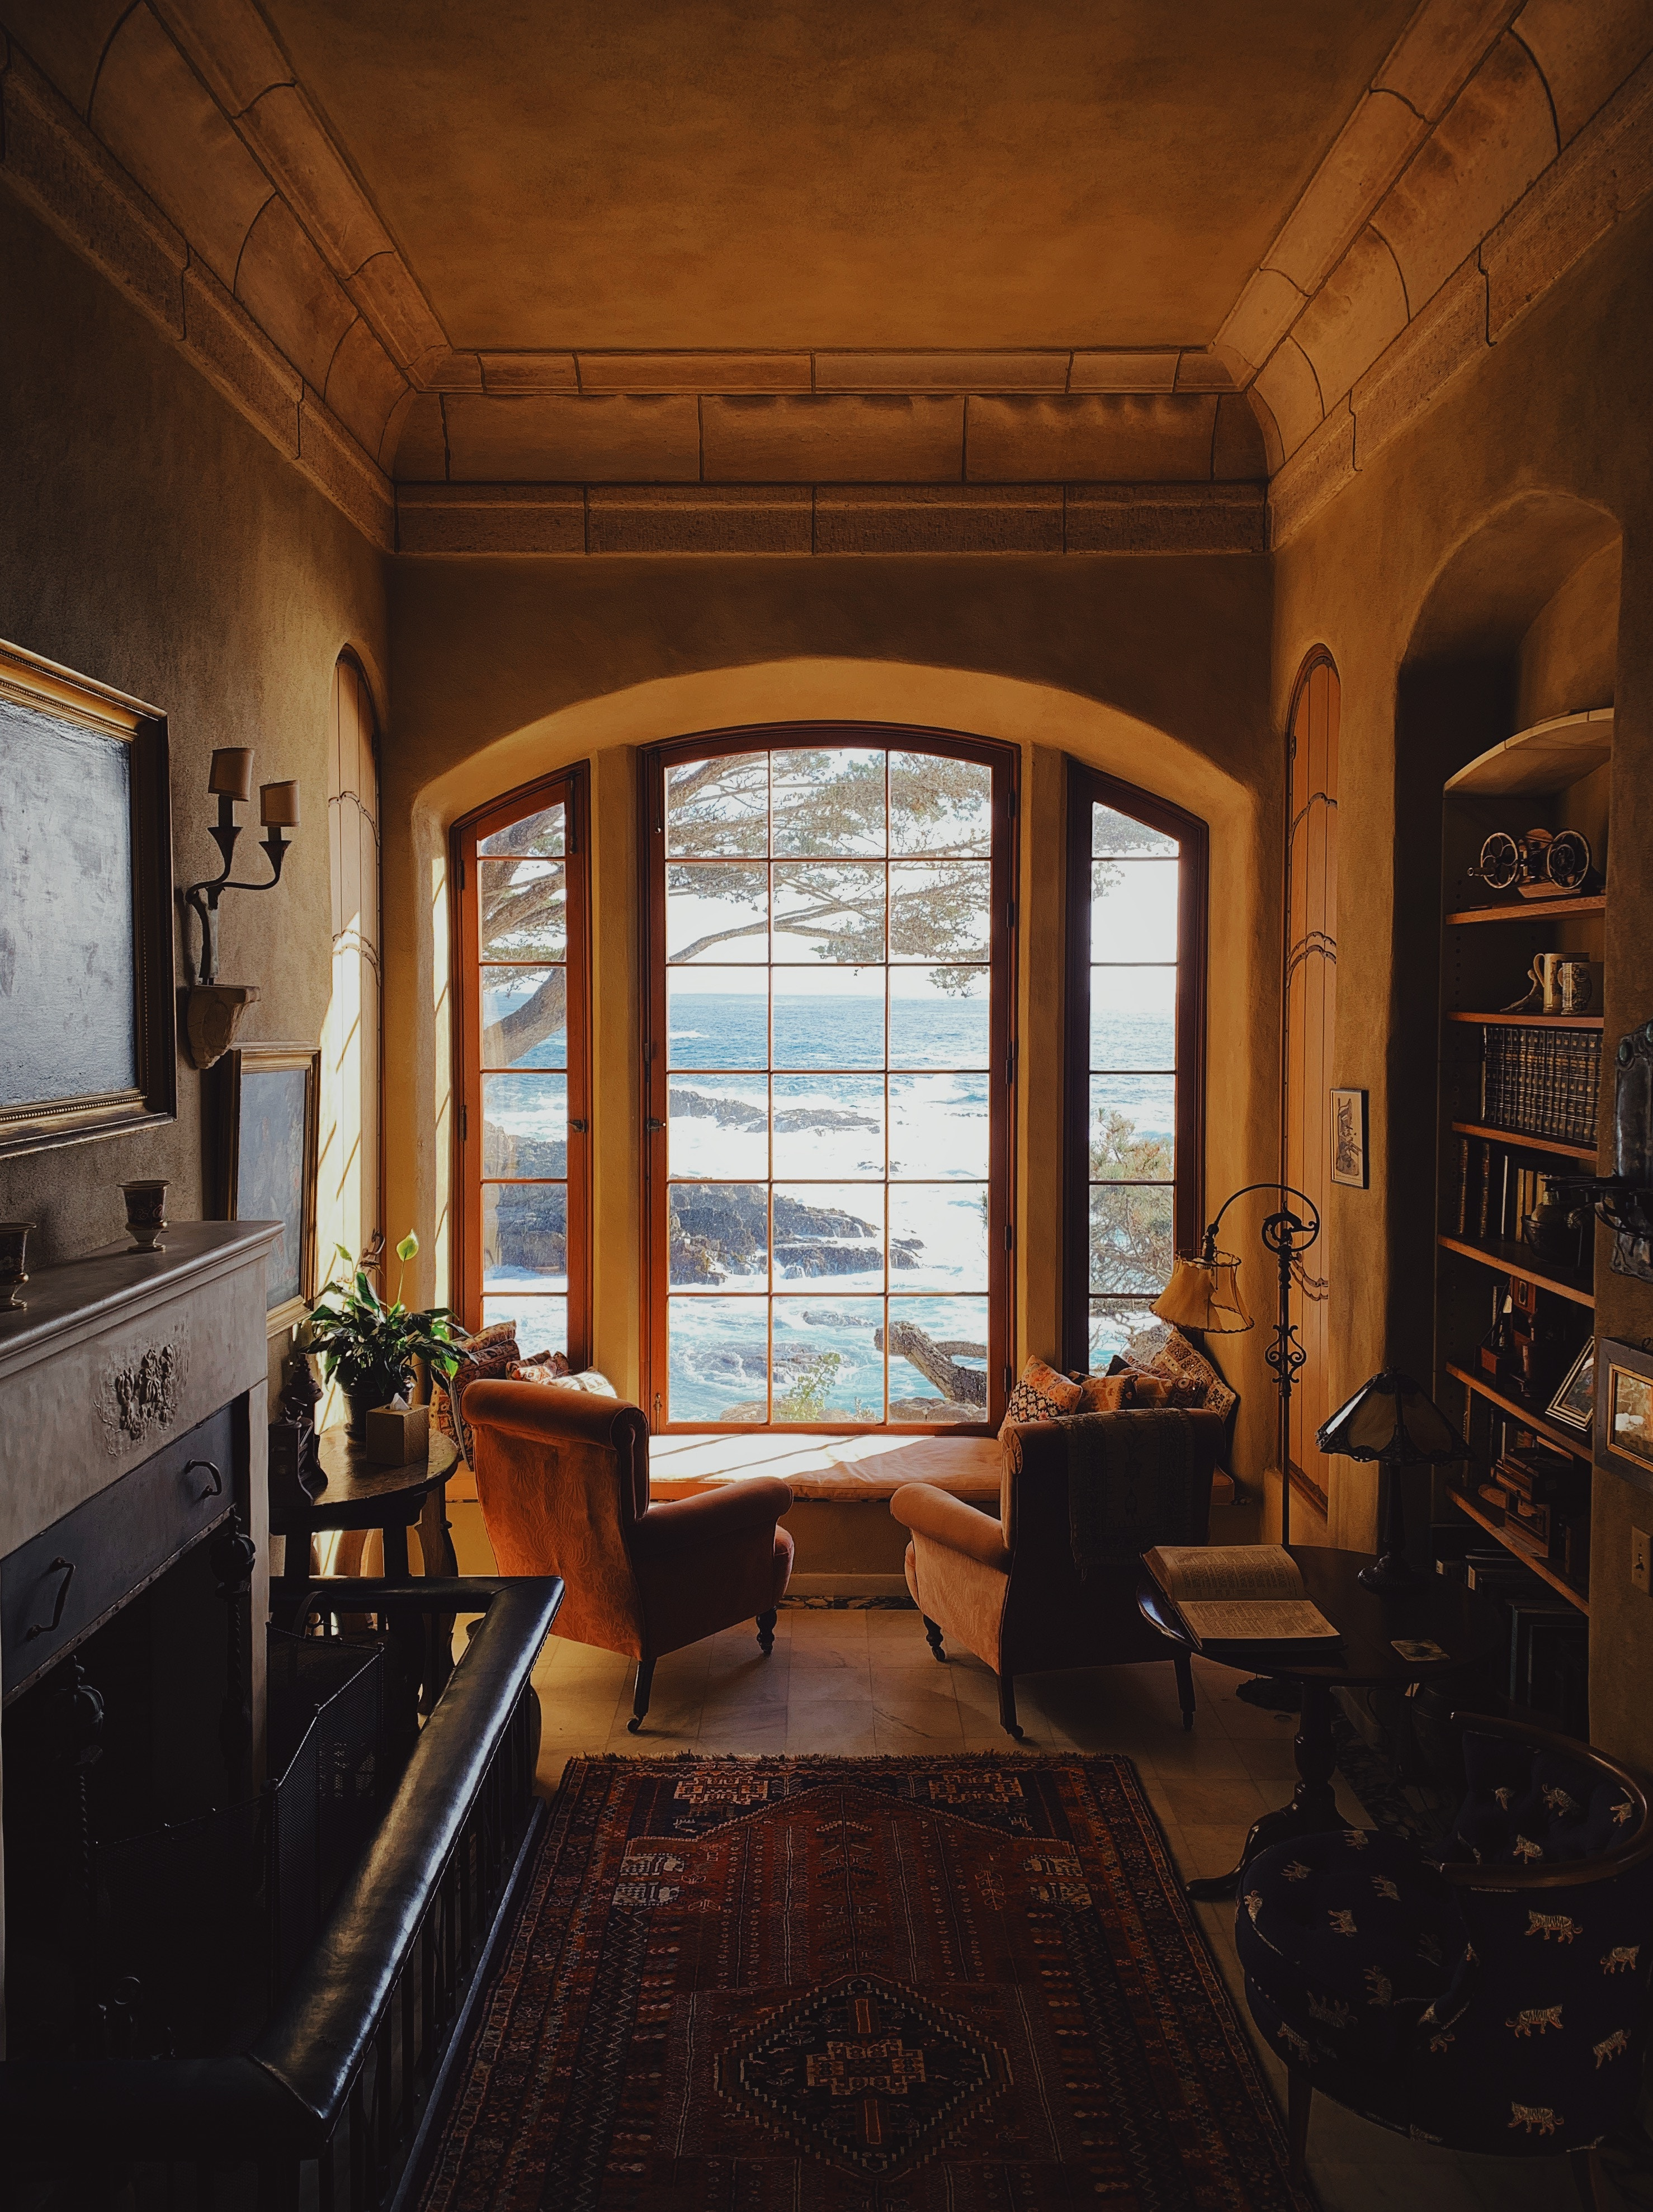 102470 download wallpaper Miscellanea, Miscellaneous, Room, Interior, Furniture, Window, View screensavers and pictures for free